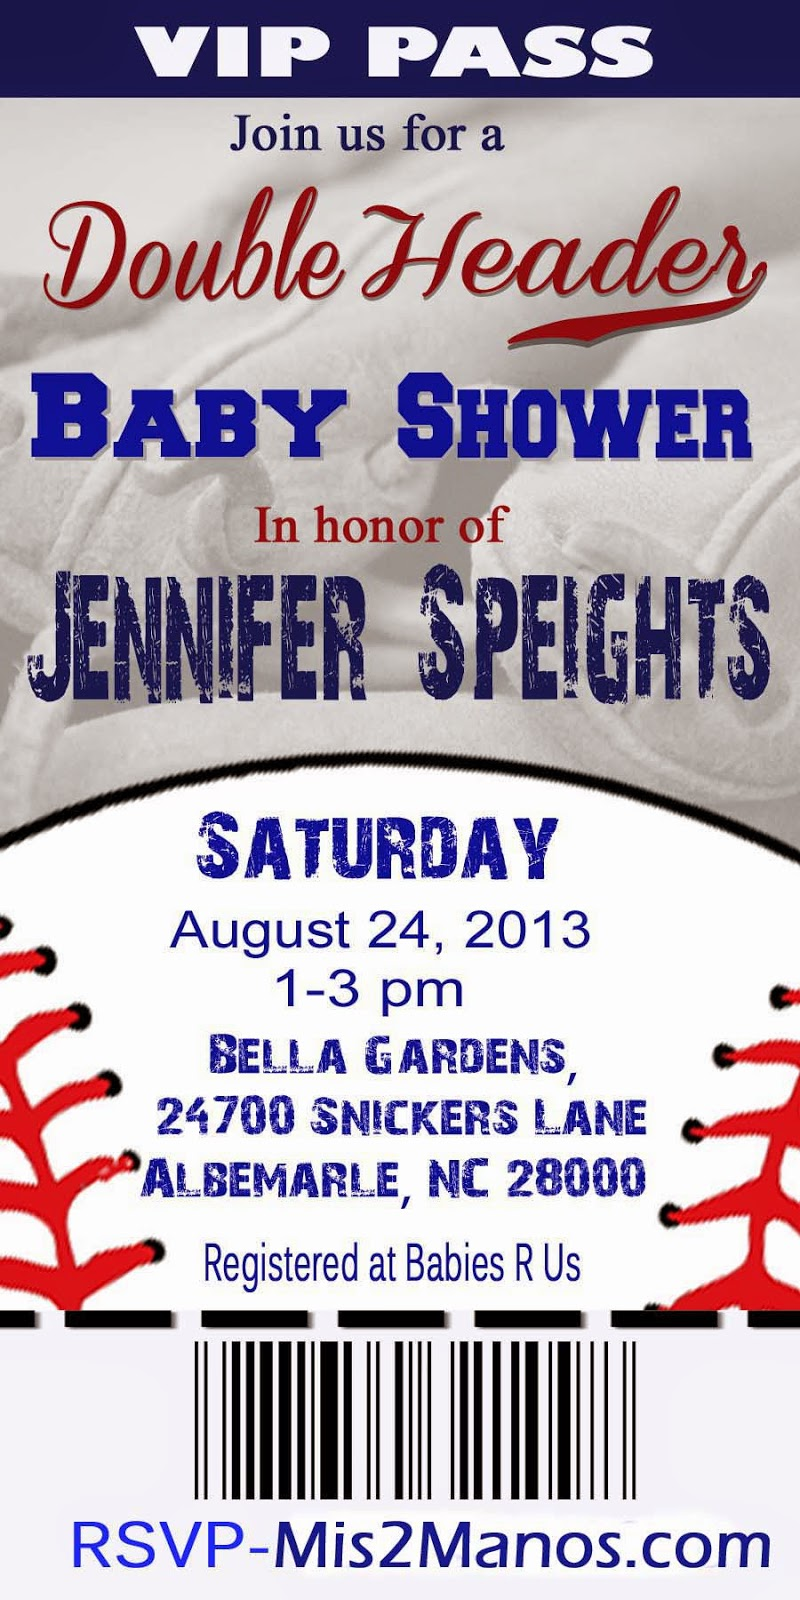 Https://www.etsy.com/listing/209063938/baseball Baby Shower Invitation  Twins?refu003dshop_home_active_2